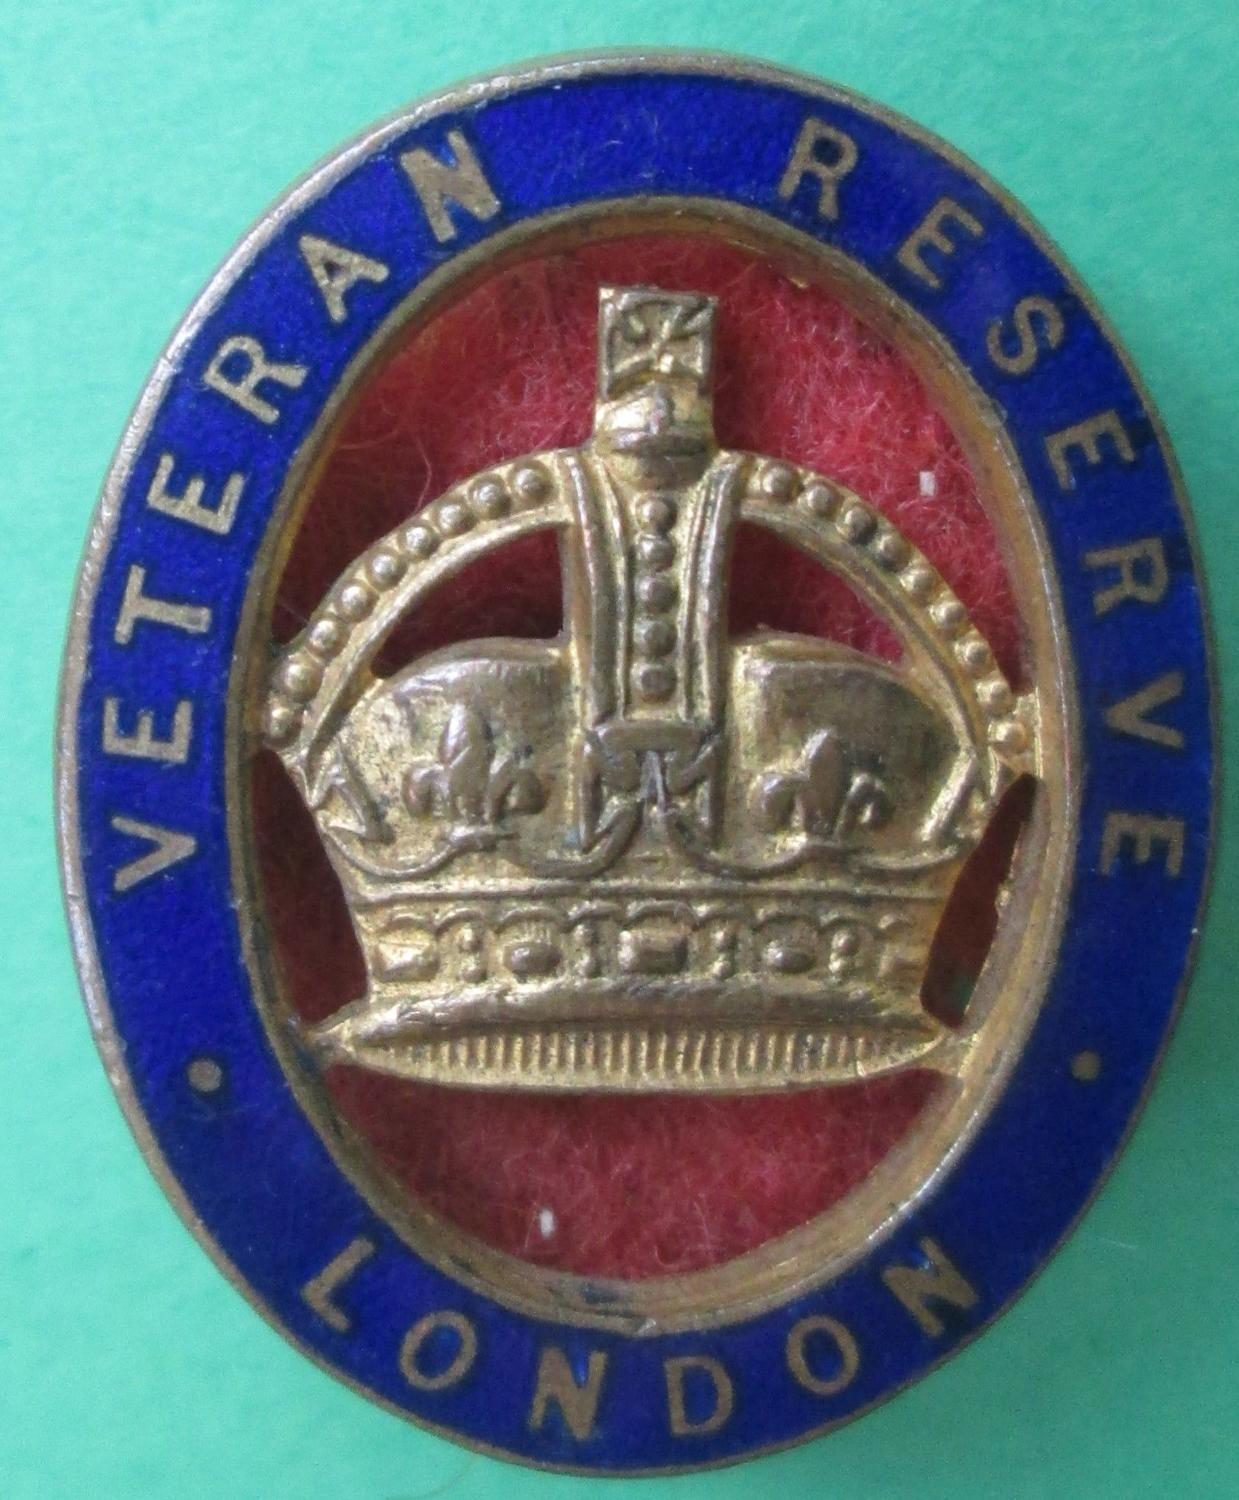 A VETERAN RESERVE LAPEL BADGE